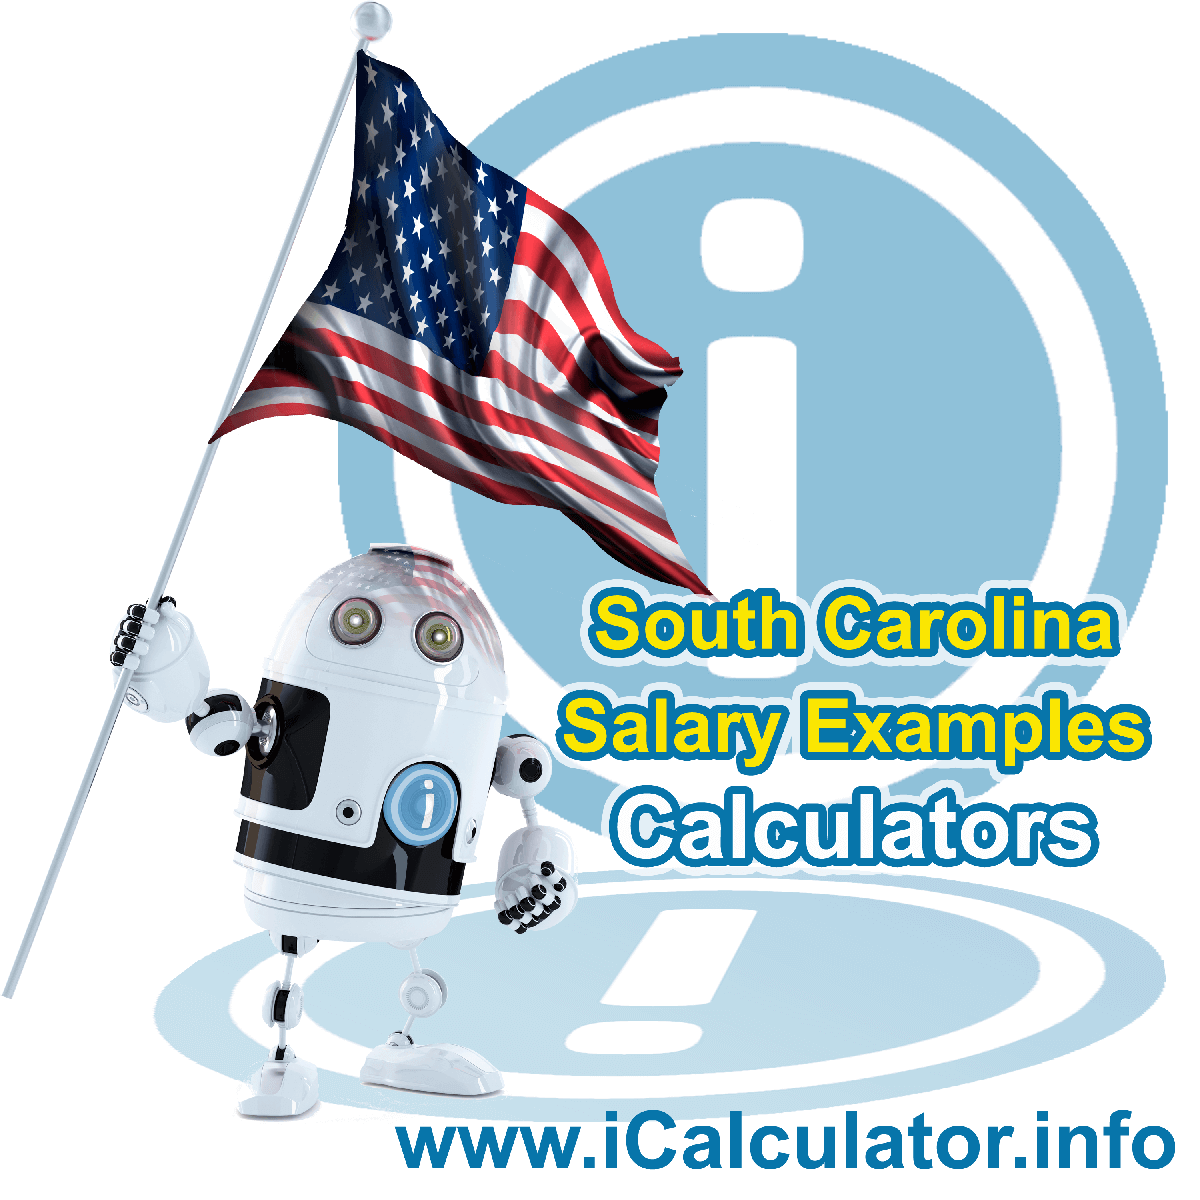 South Carolina Salary Example for a $165.00 Annual Salary in 2020 | iCalculator | $165.00 salary example for employee and employer paying South Carolina State tincome taxes. Detailed salary after tax calculation including South Carolina State Tax, Federal State Tax, Medicare Deductions, Social Security, Capital Gains and other income tax and salary deductions complete with supporting South Carolina state tax tables